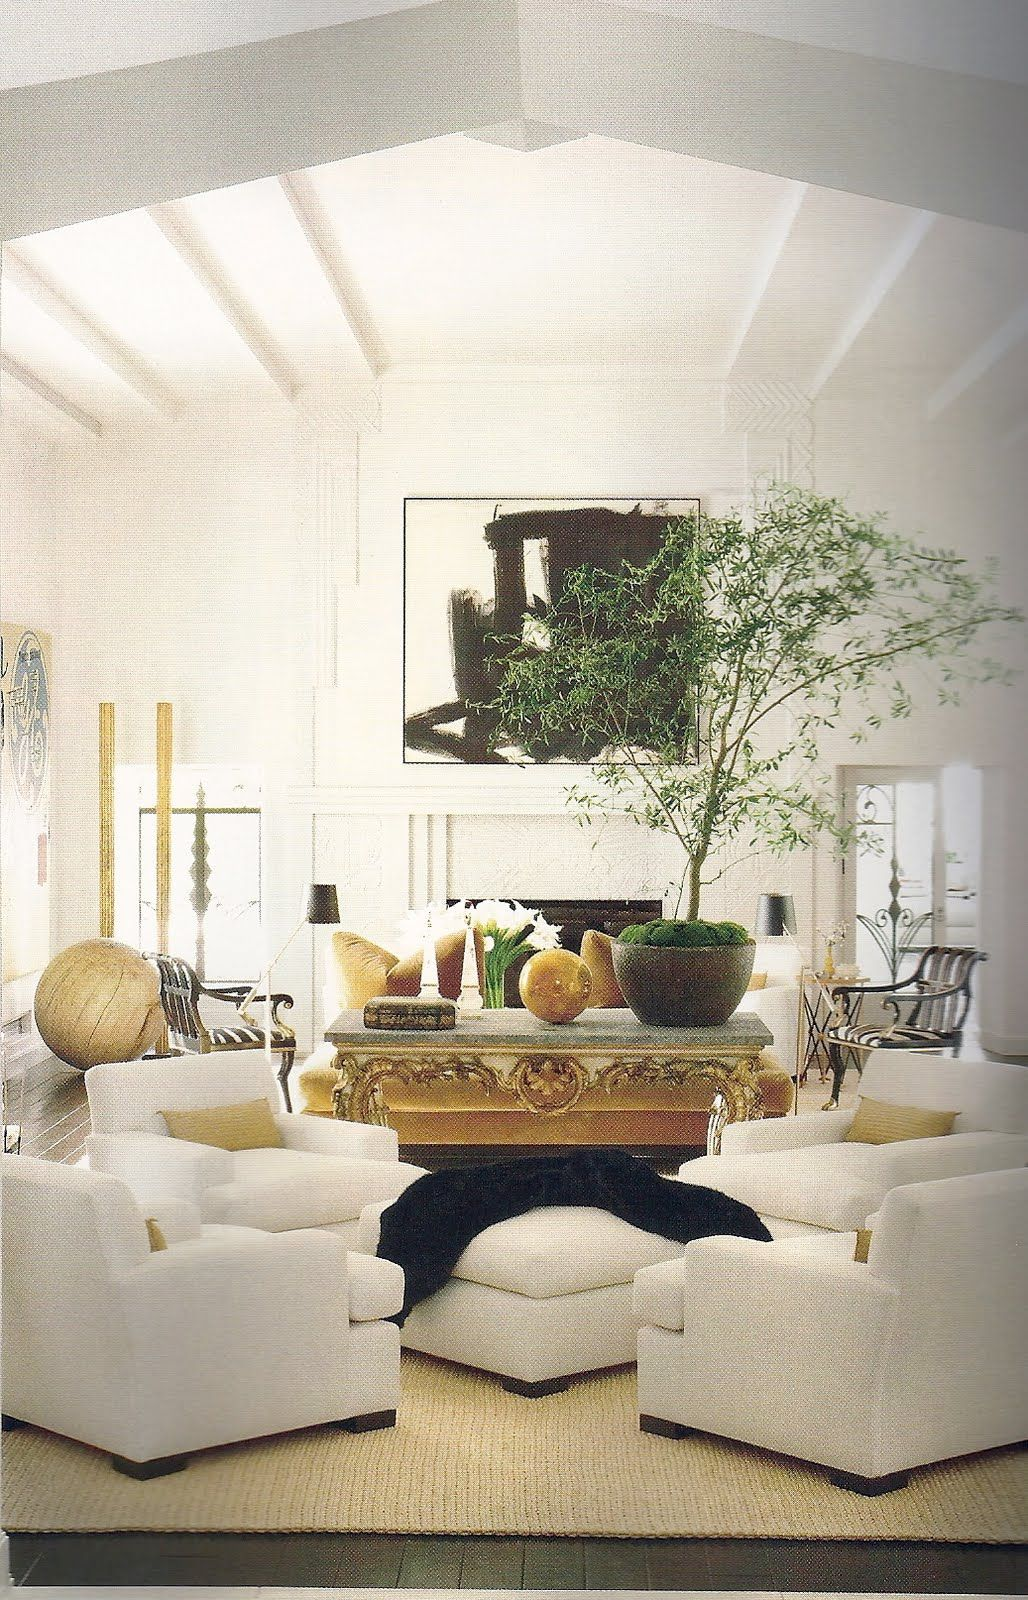 Furniture Arrangements - Four Chairs | Living room seating ...